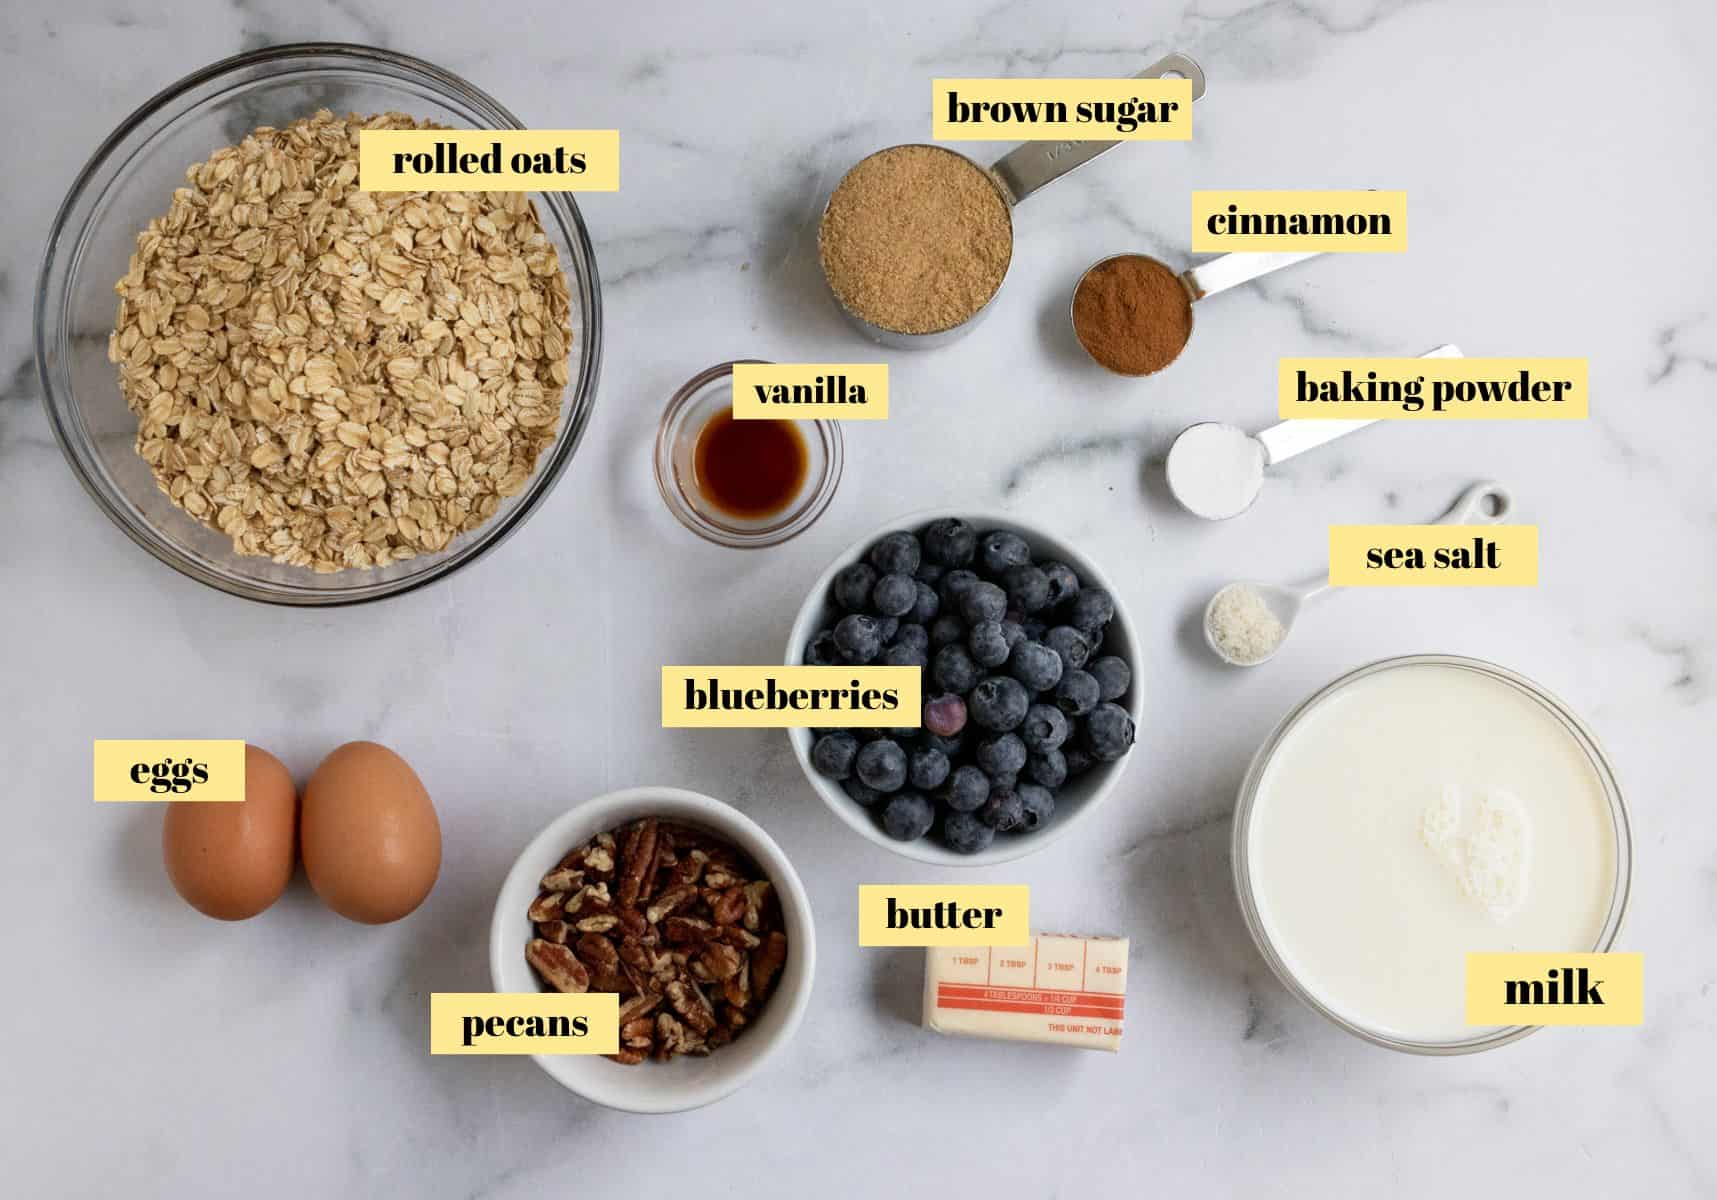 Labeled ingredients laying on a counter.